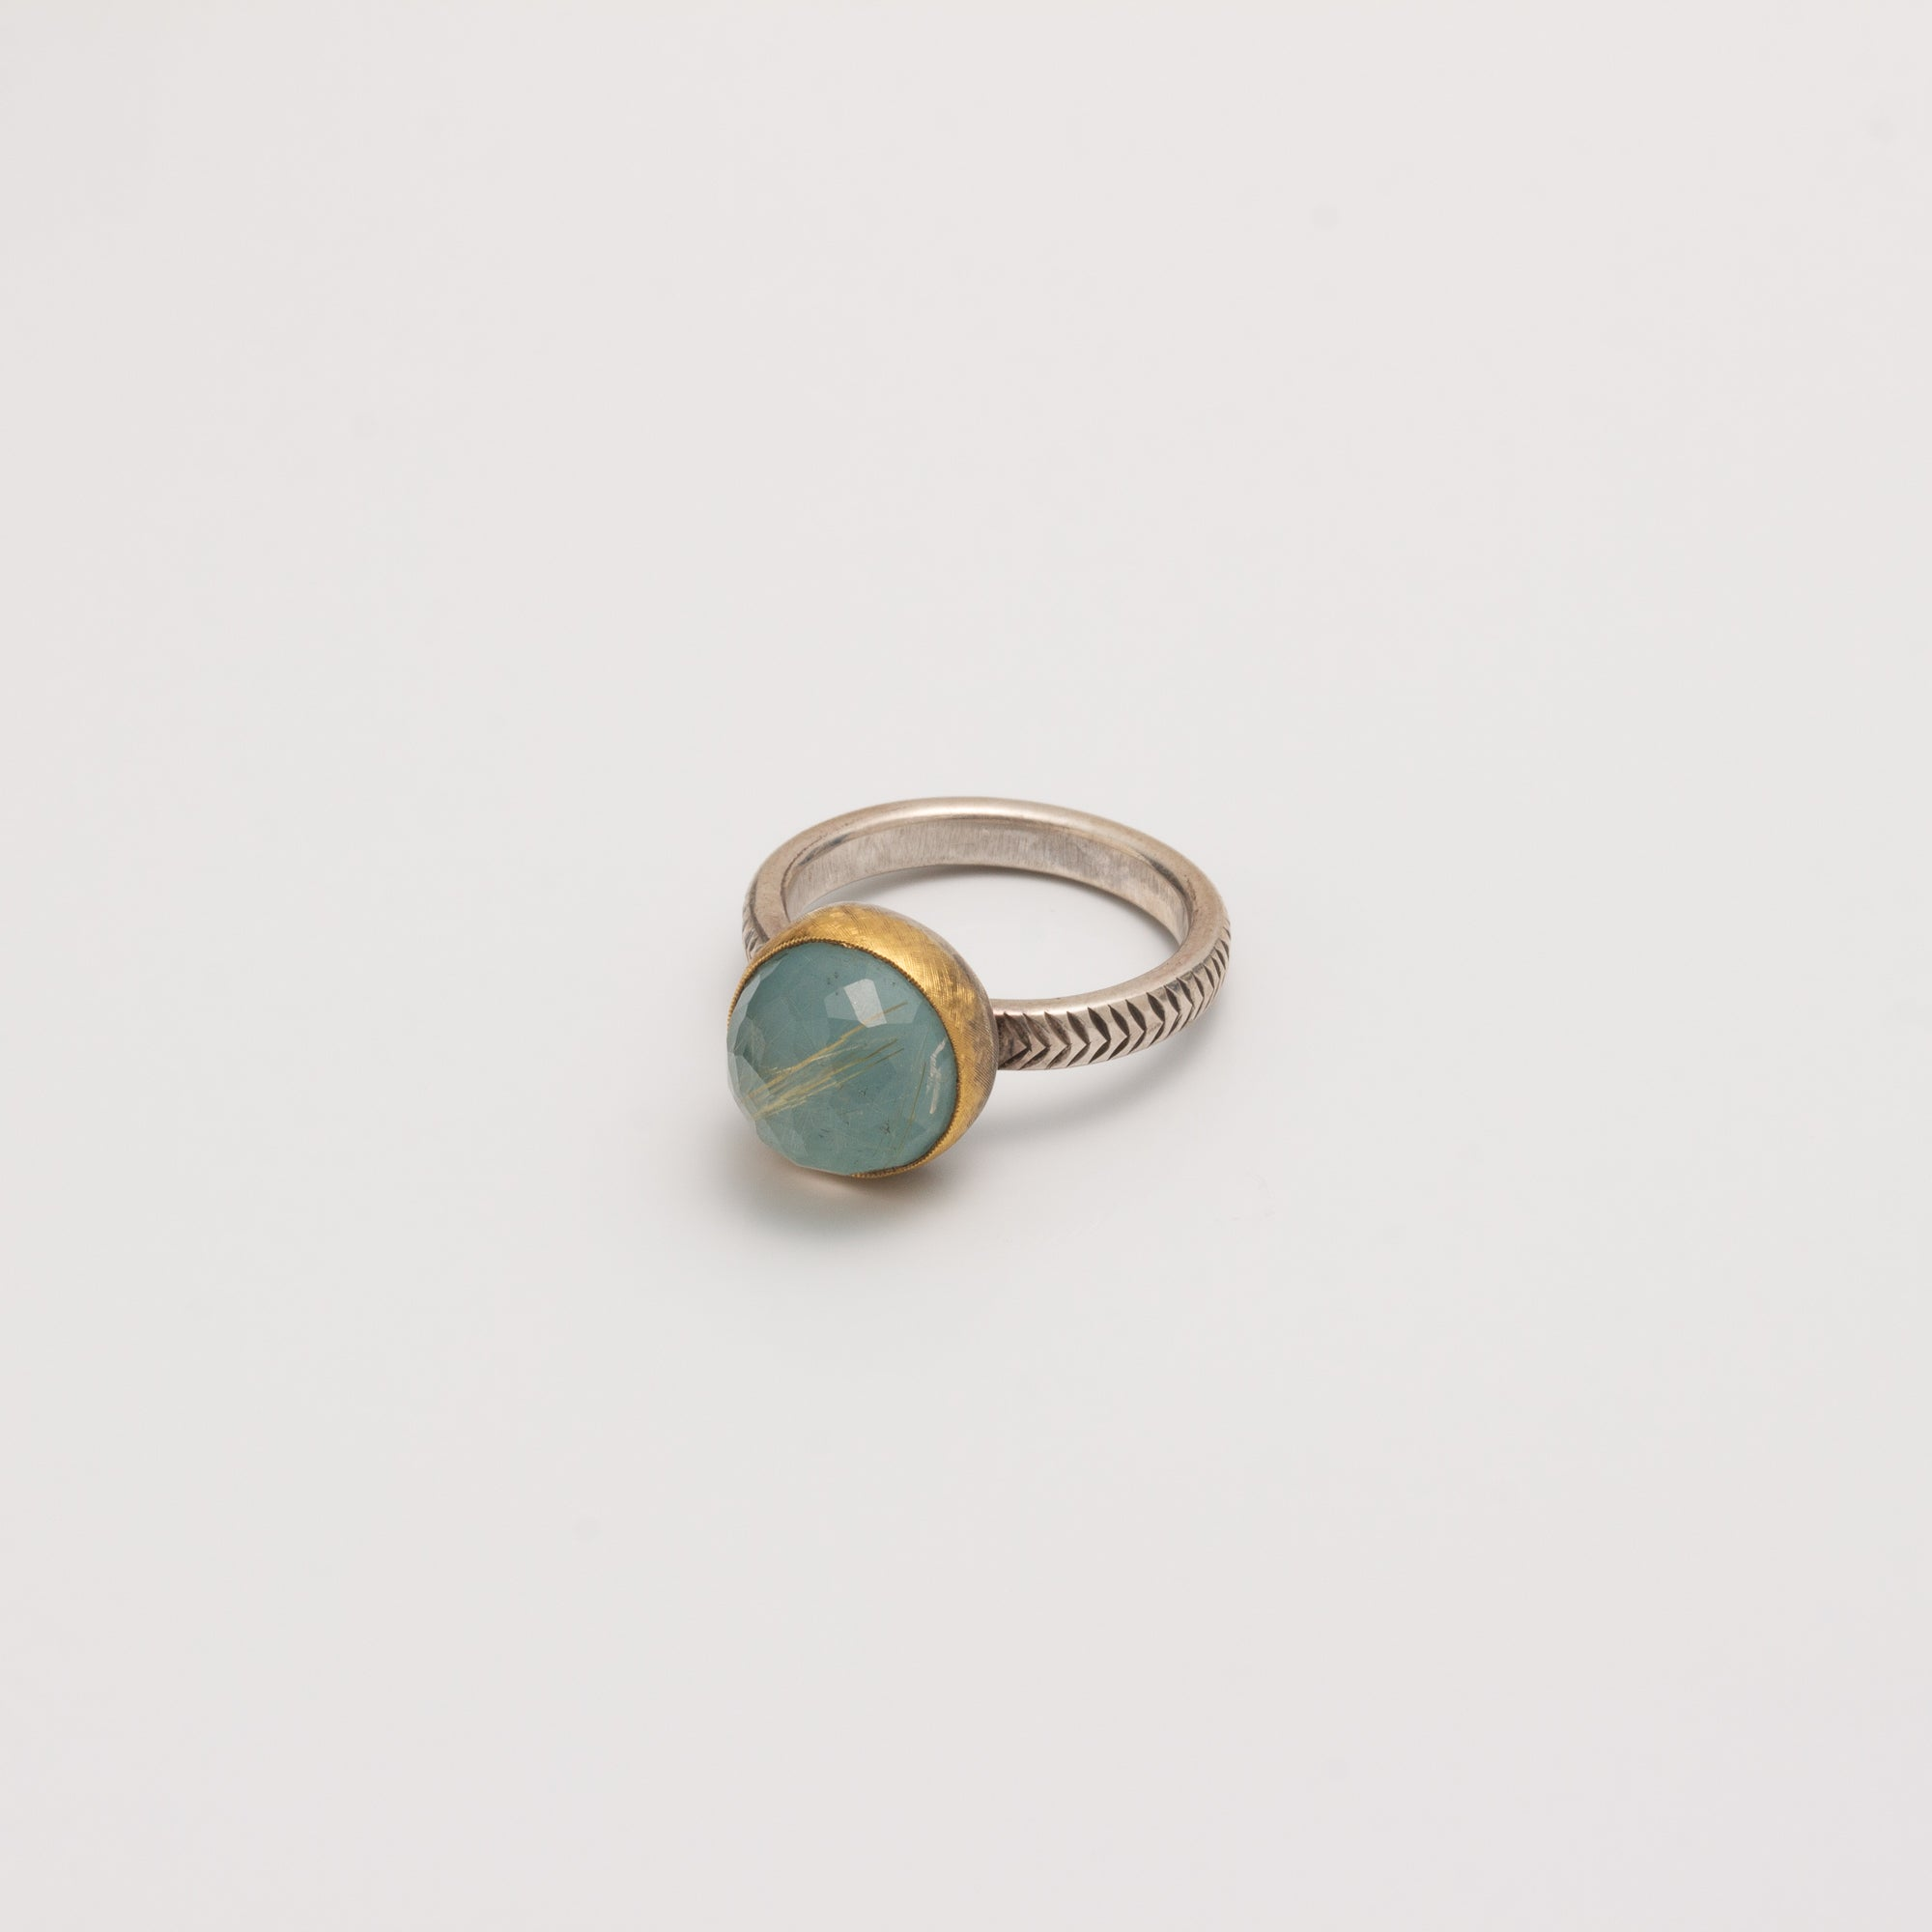 FEATHER ENGRAVED RING // RUTILATED QUARTZ & TURQUOISE